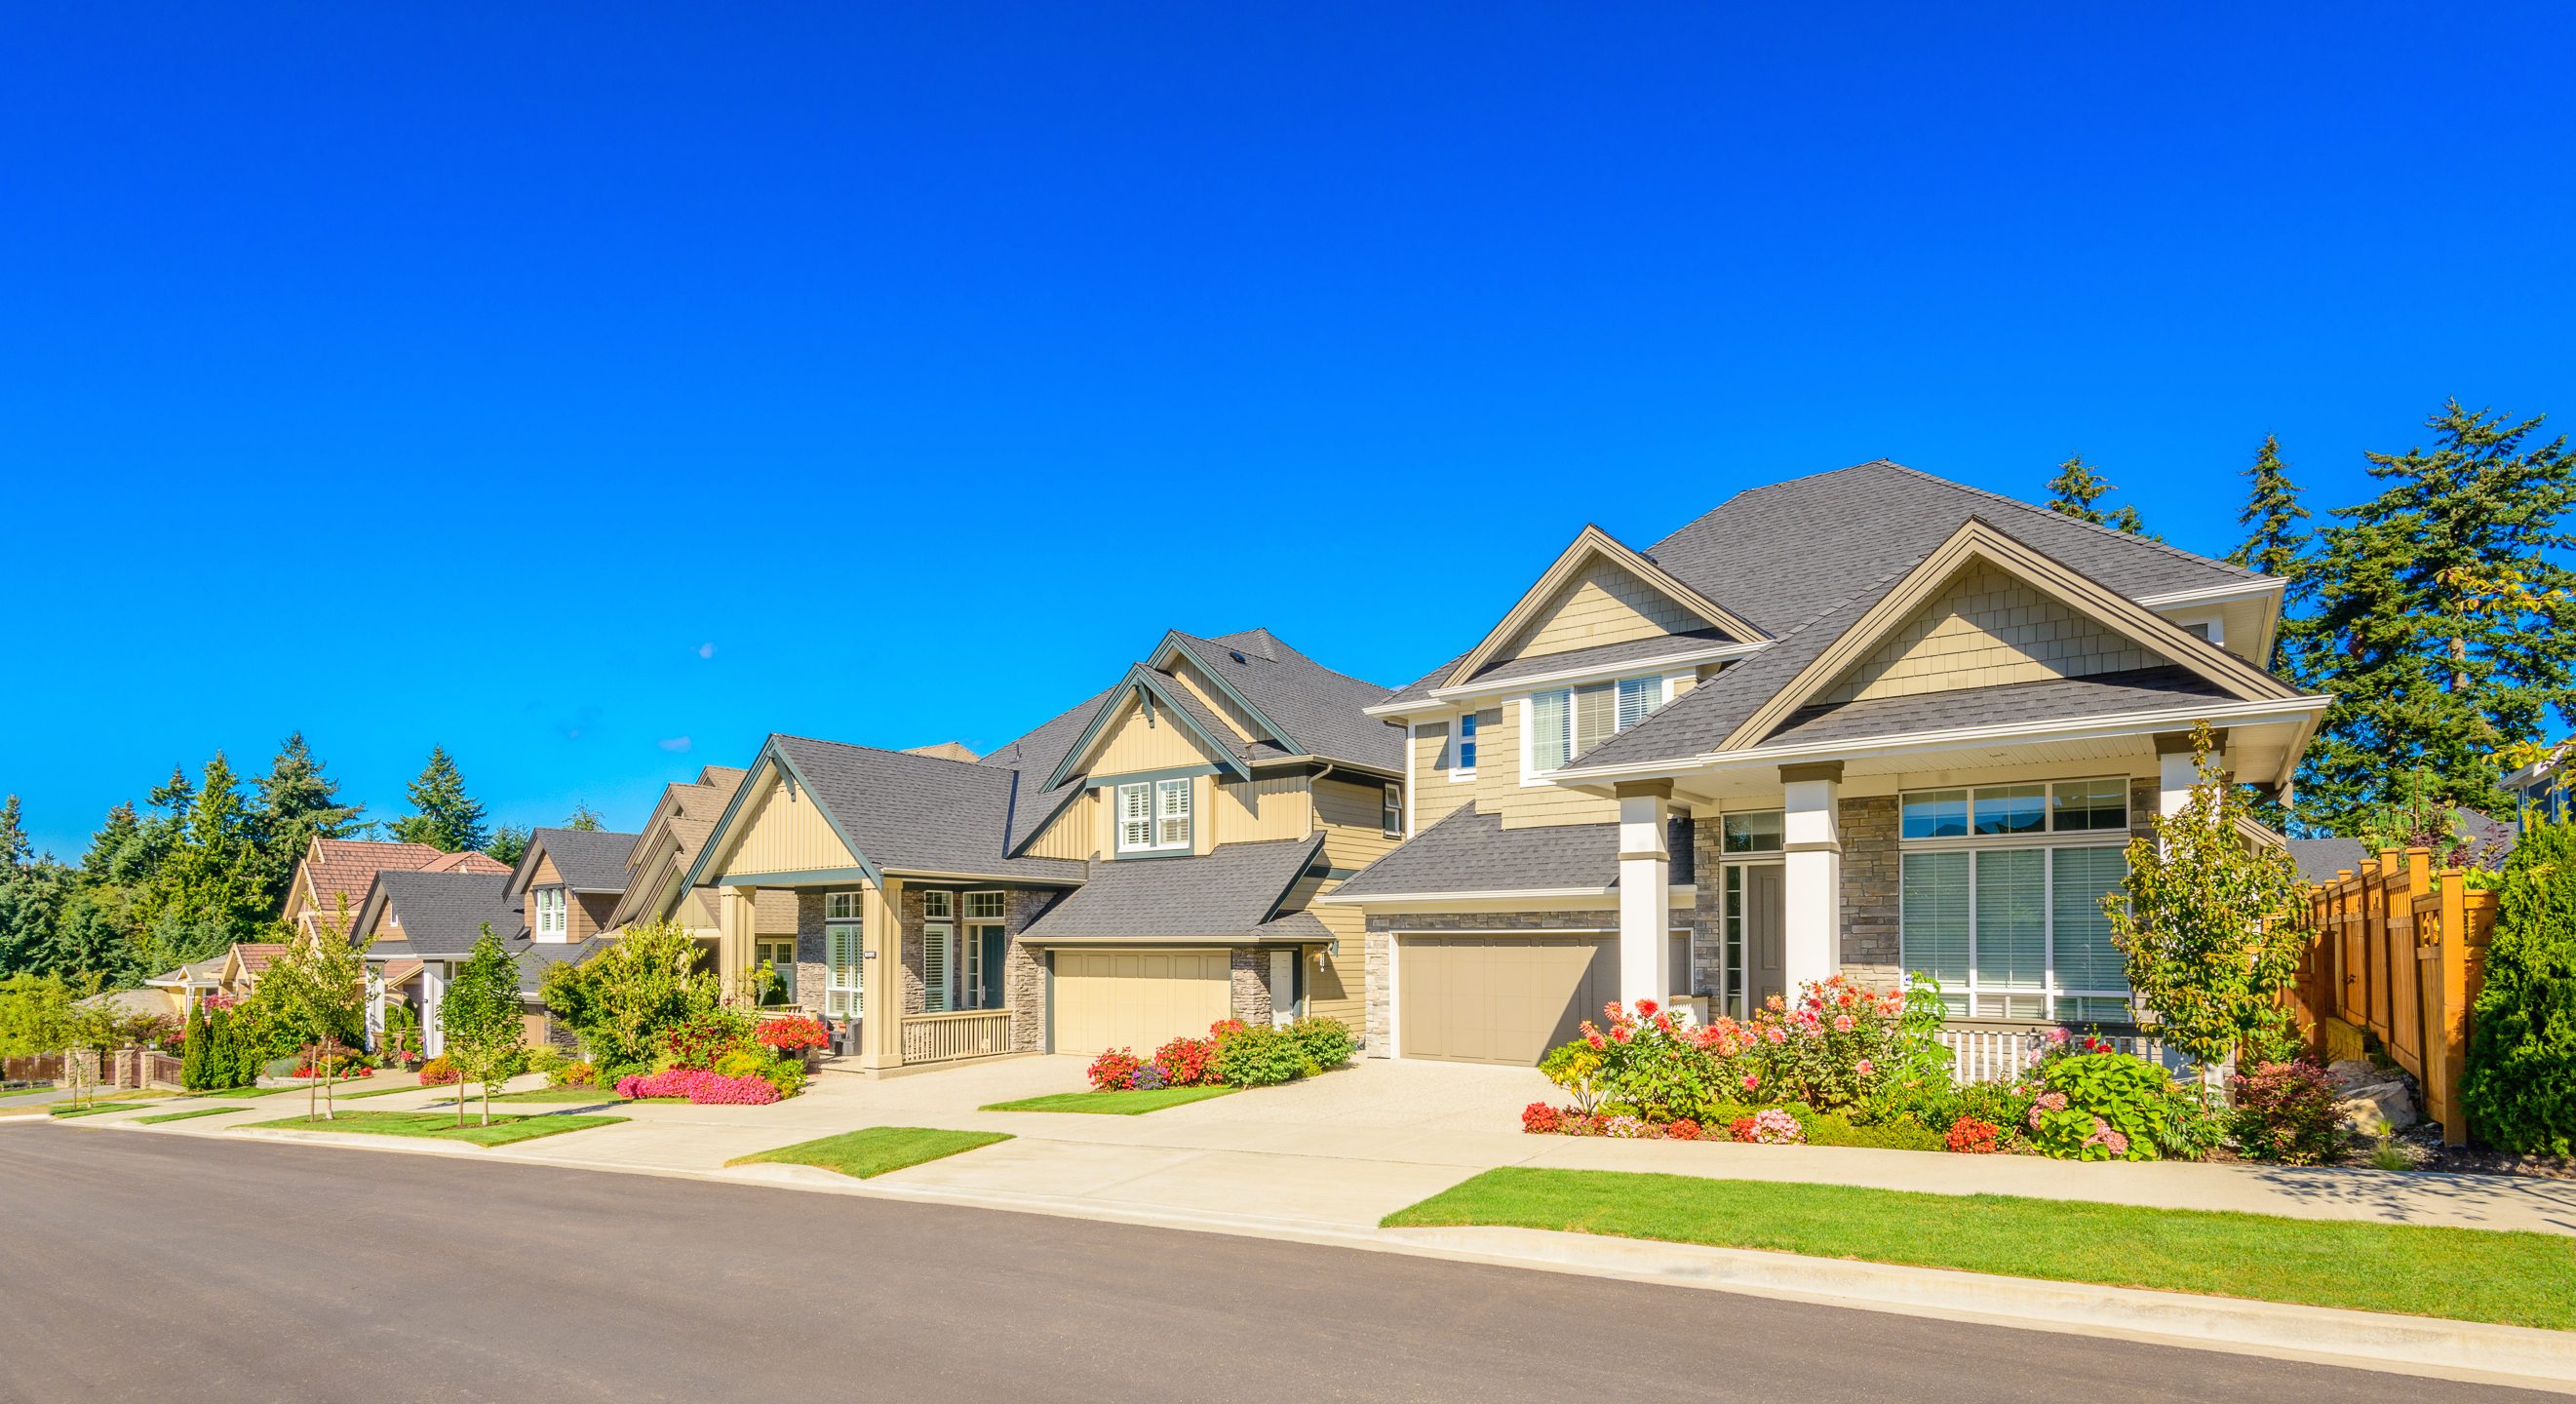 $100,000 to $200,000 Homes For Sale San Antonio TX, Houses